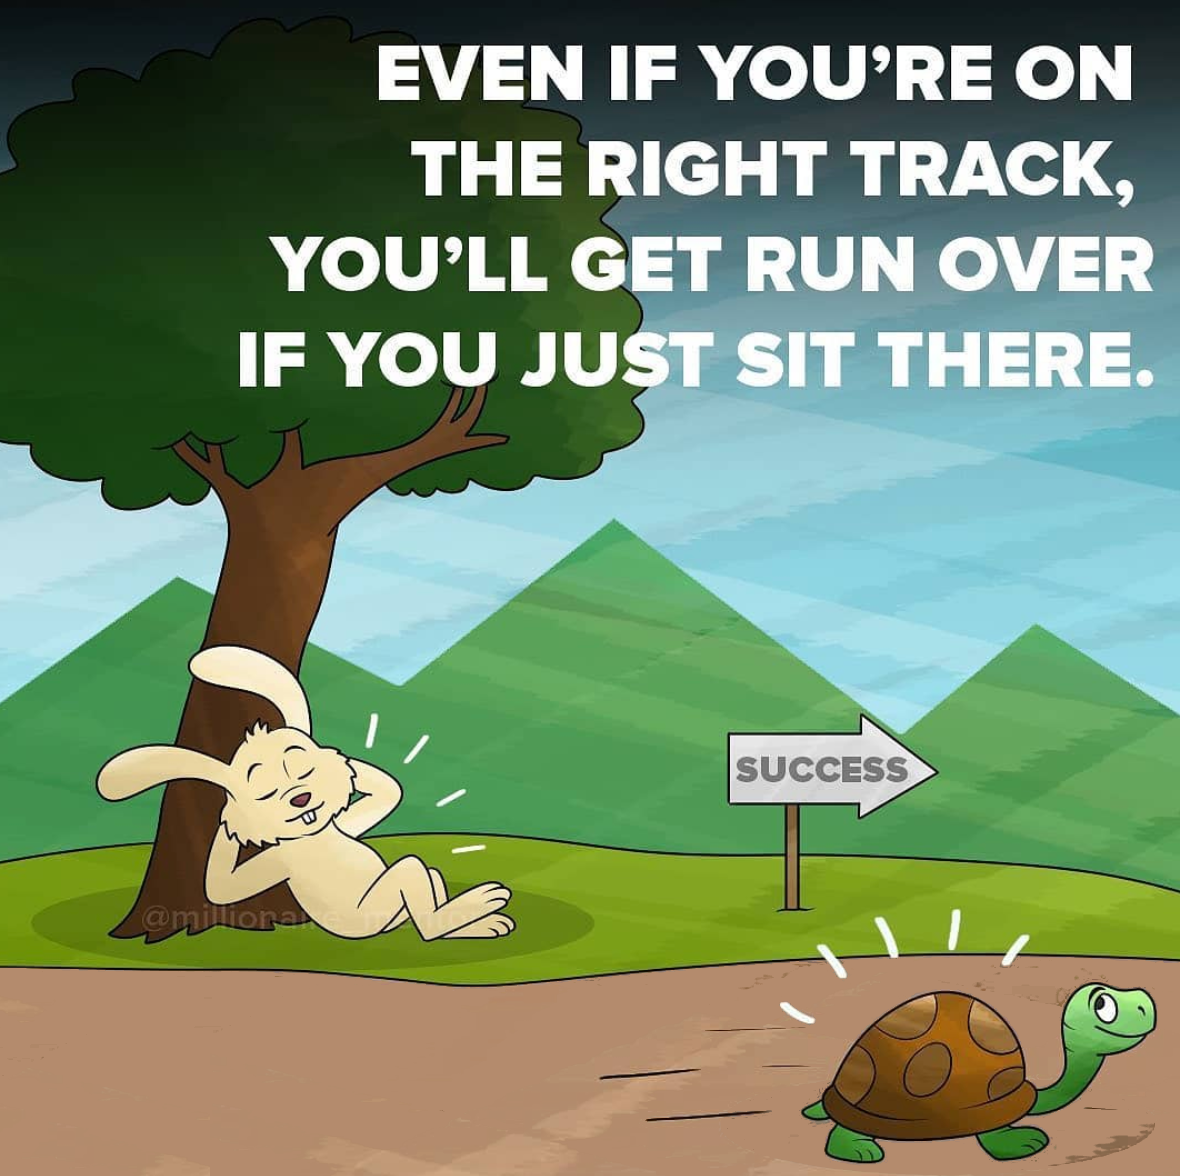 [Image] Even if you're on the right track, you'll get run over if you just sit there